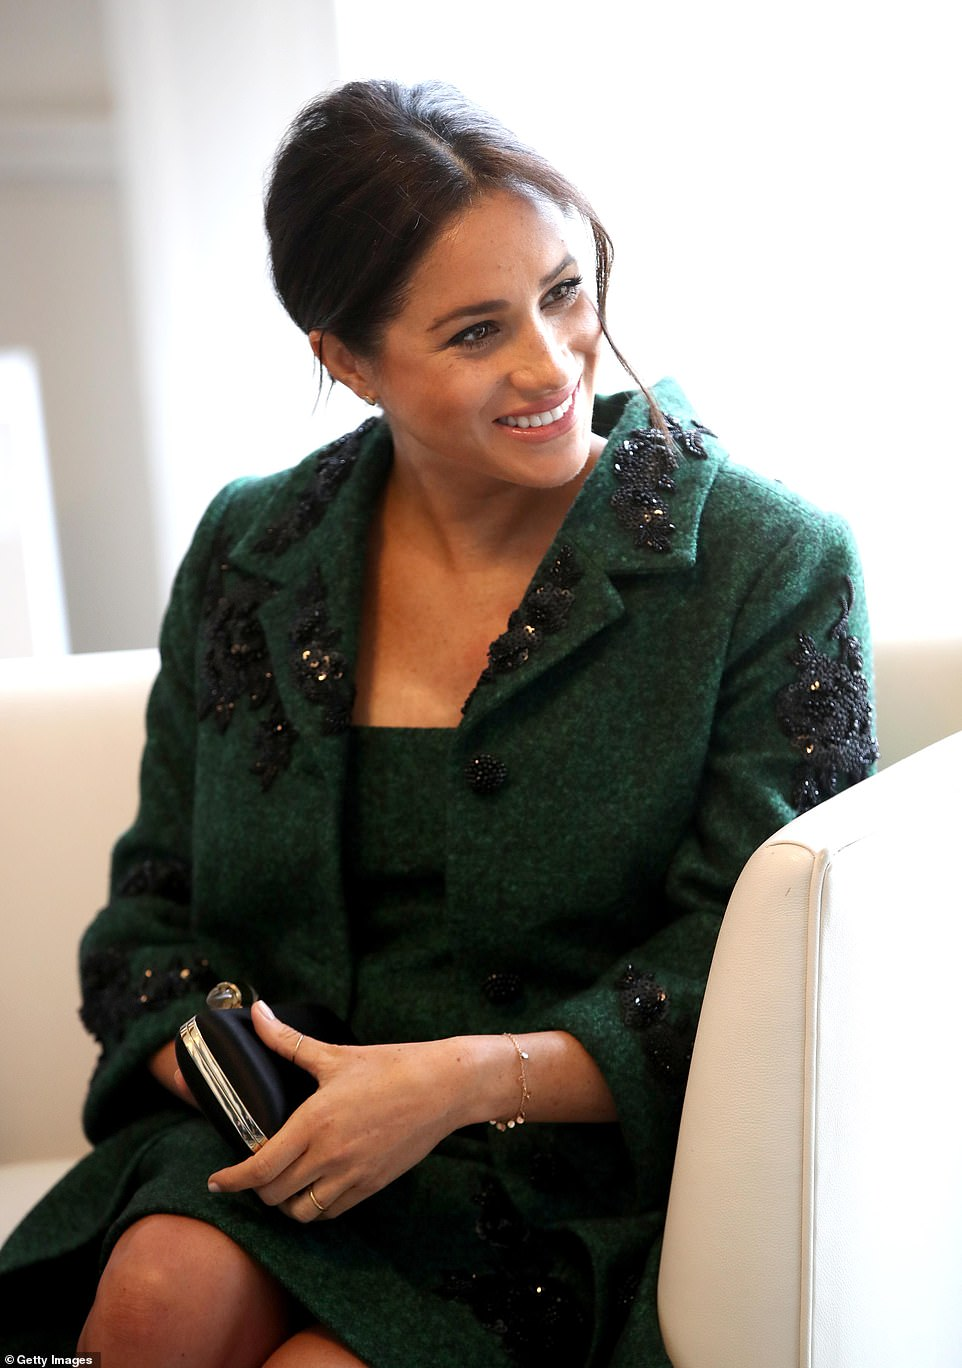 Meghan is all smiles as she joins Harry at a Commonwealth event this morning. In her message to mark the occasion, the Queen has praised how the 'family of nations' inspires its member states to find ways of protecting the planet and its citizens